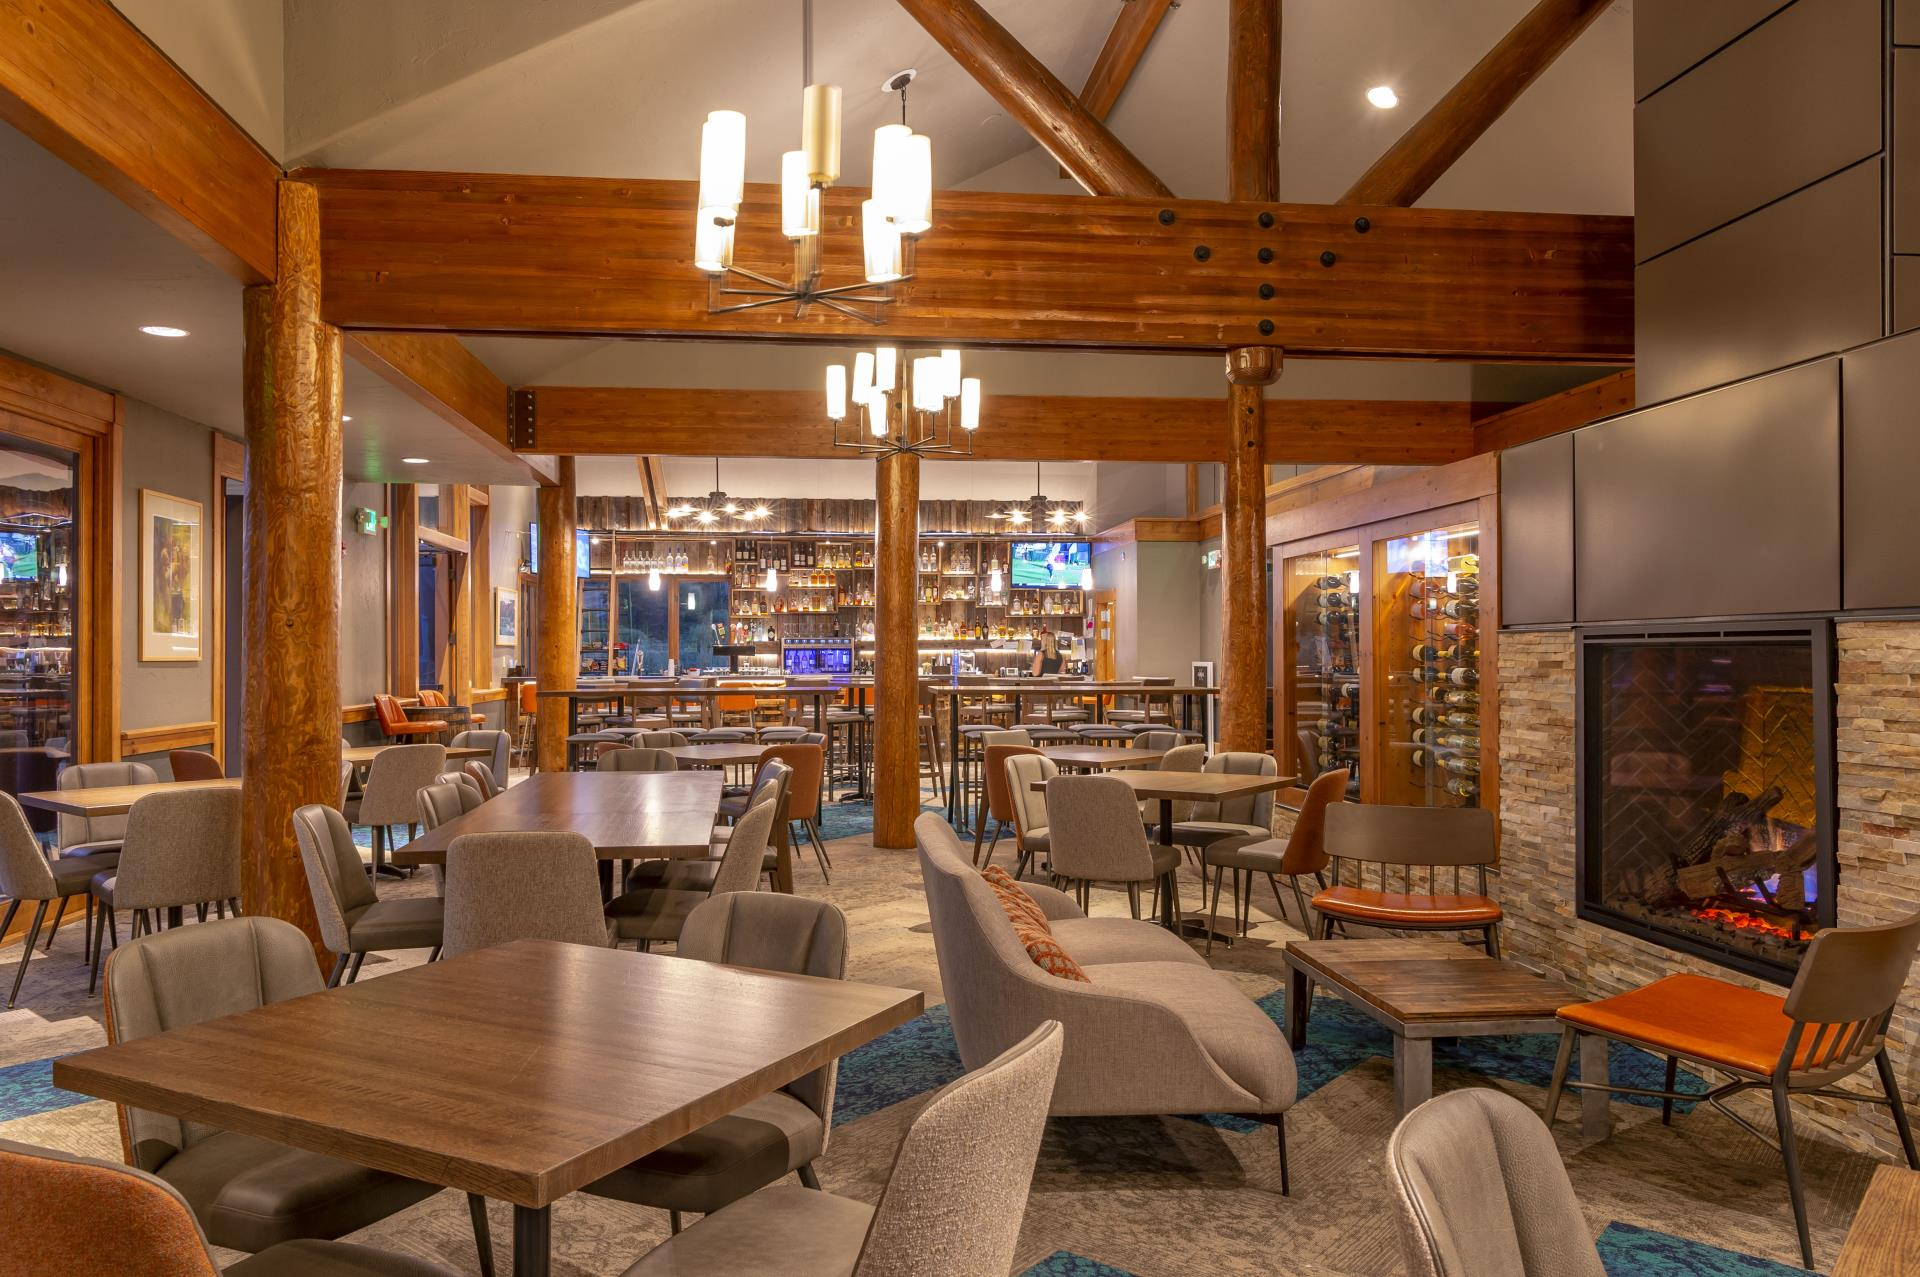 Interior of Gold Run Nordic Center clubhouse with bar area and seating